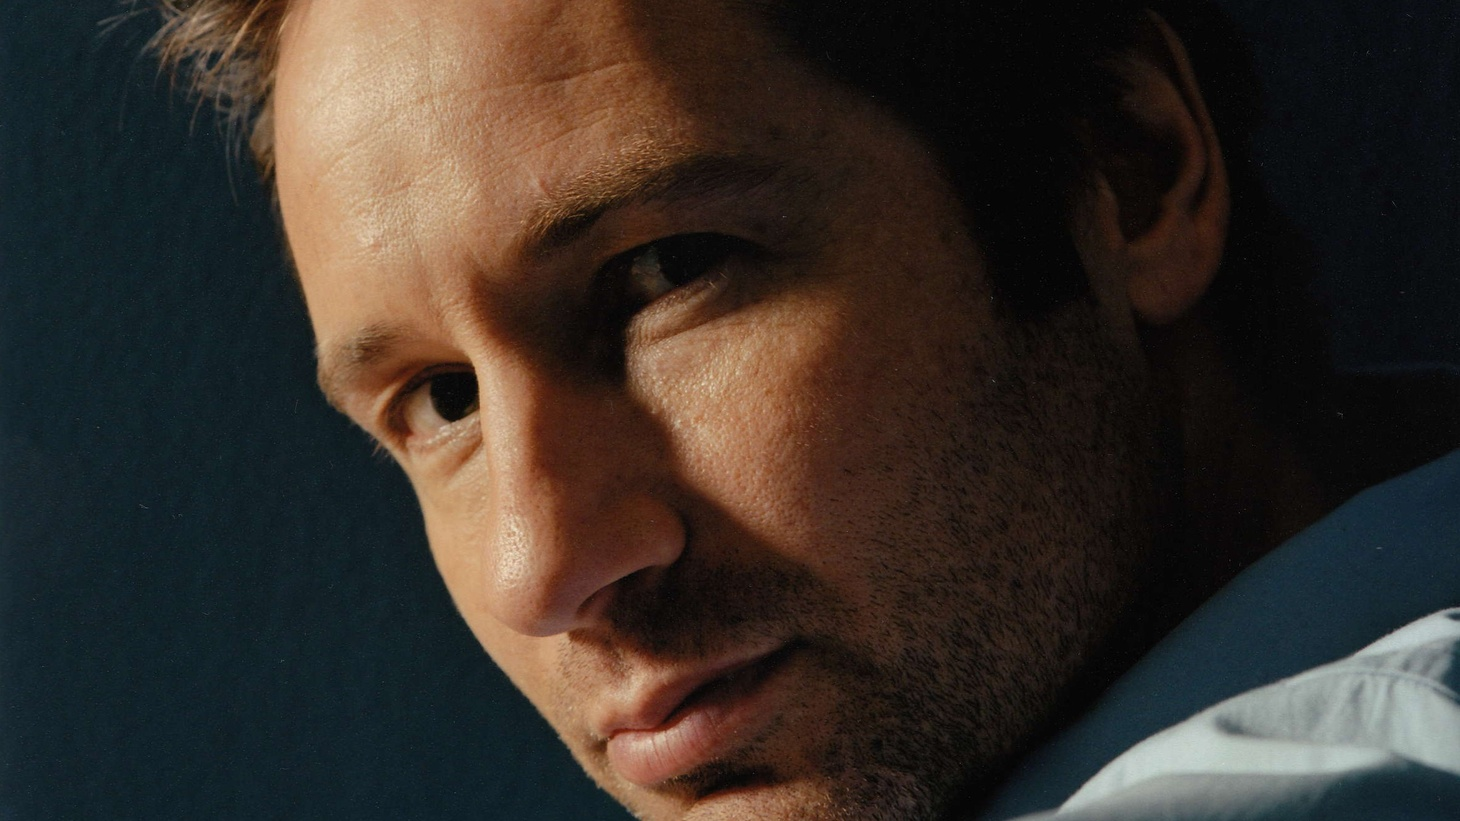 Author and actor, David Duchovny.